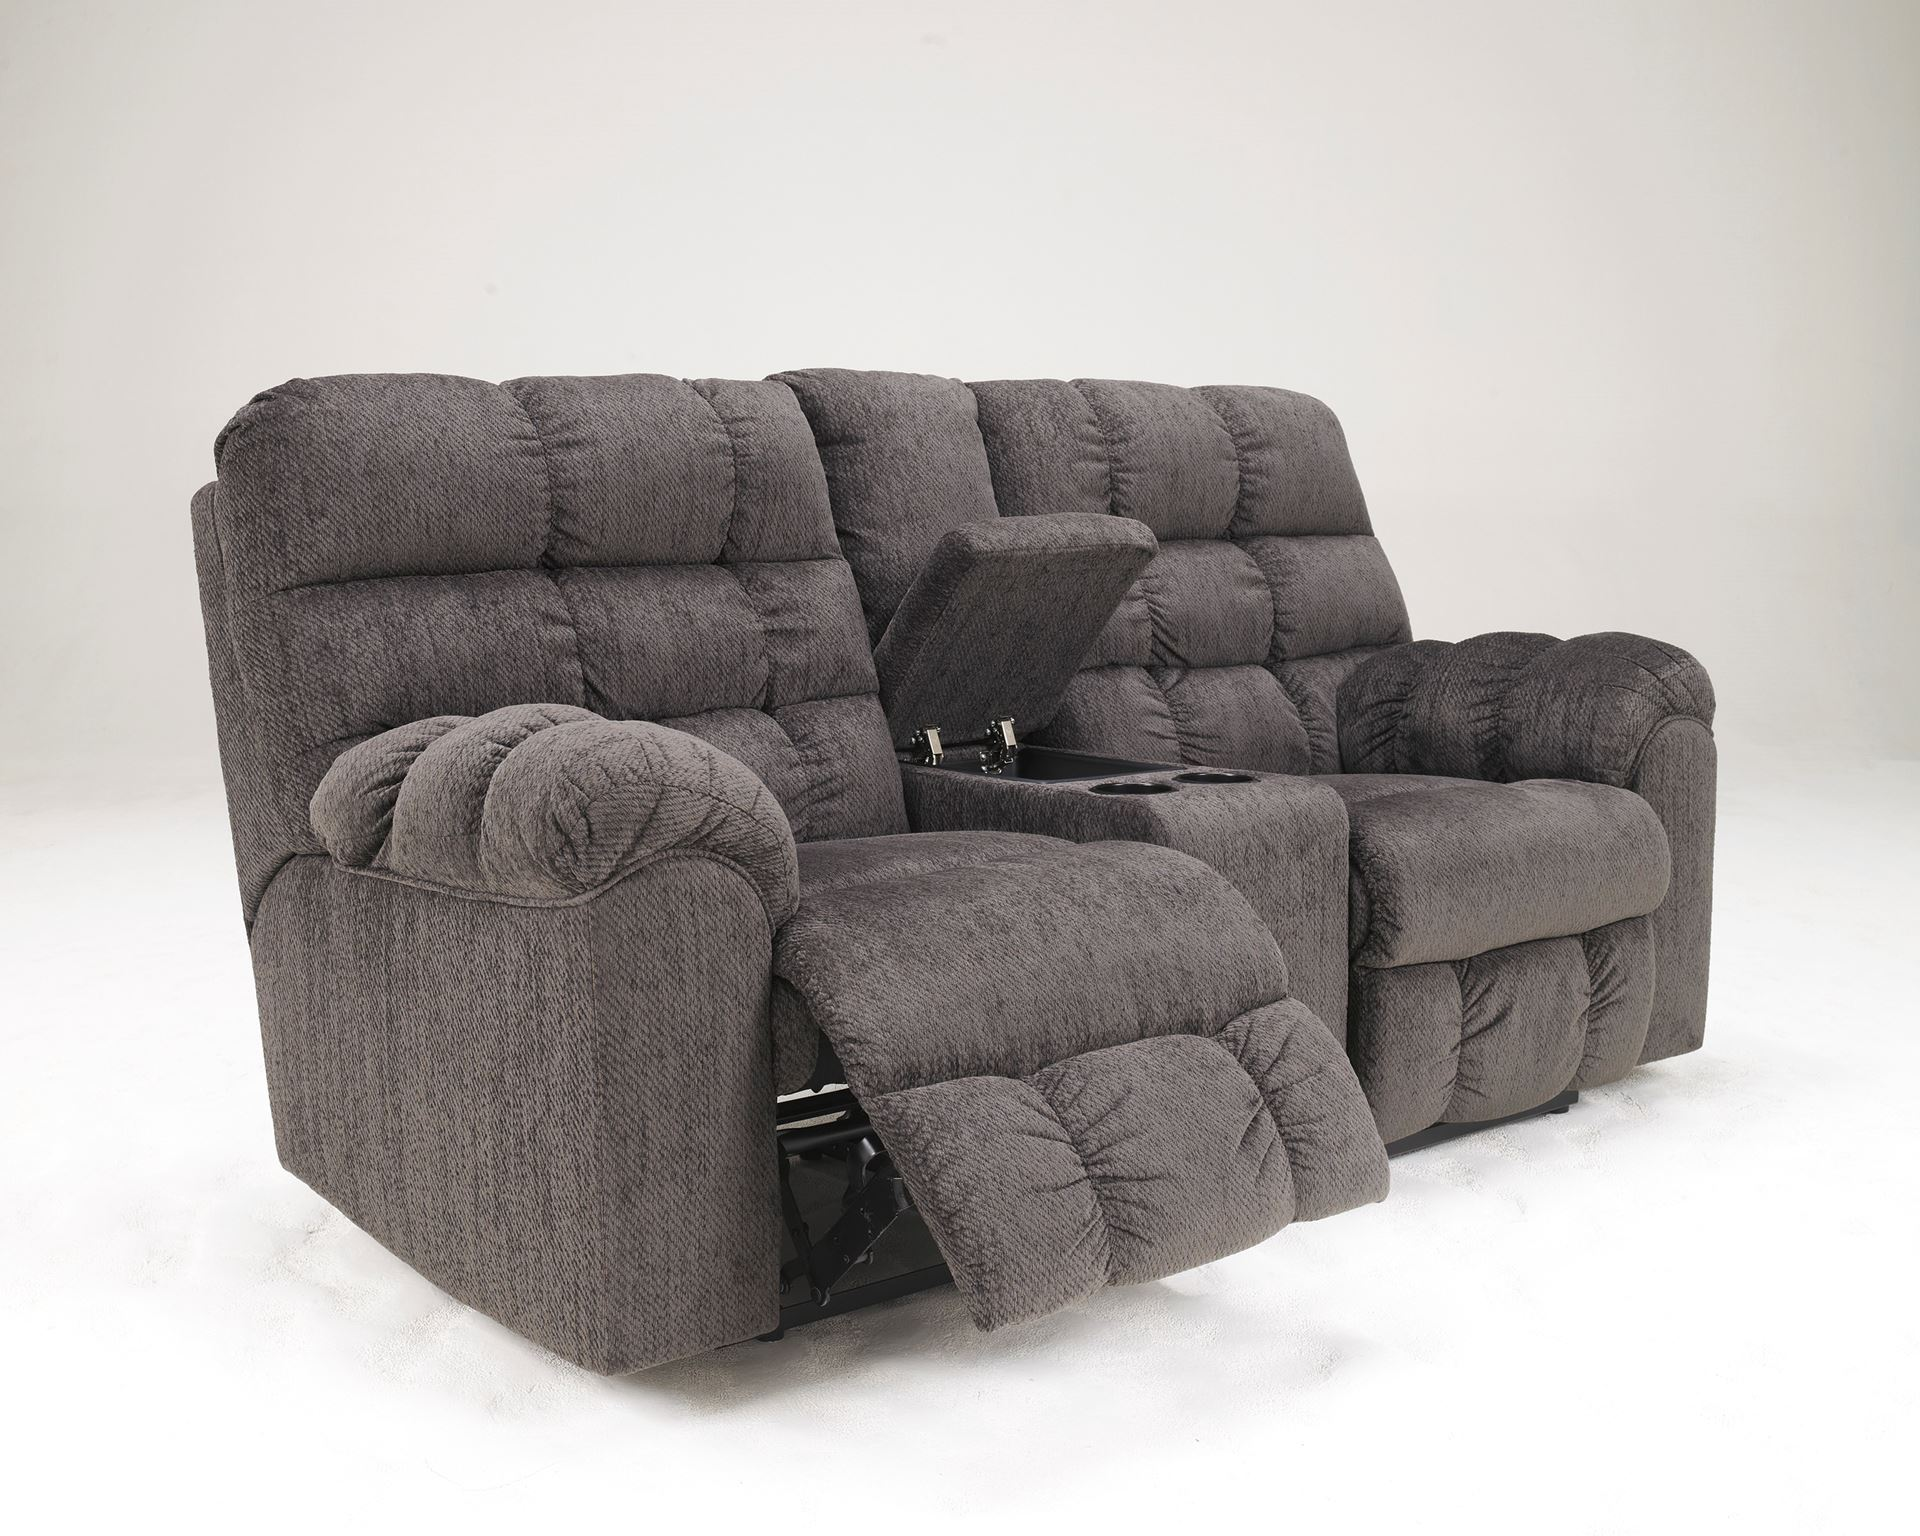 Acieona Double Reclining Loveseat With Console